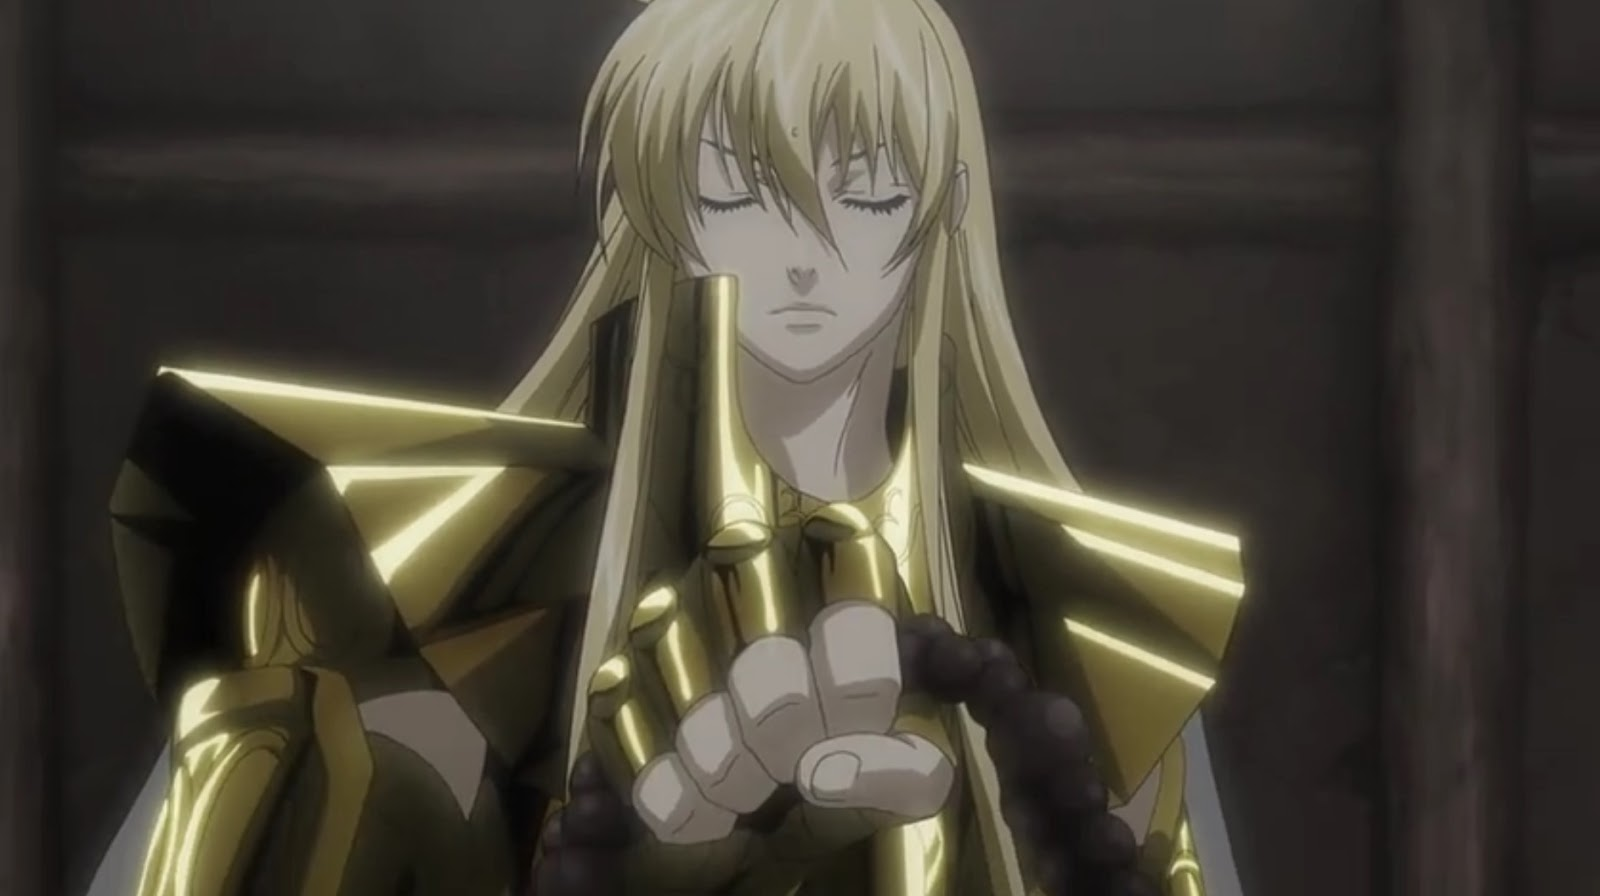 Saint Seiya: The Lost Canvas Episodio 08 Dublado